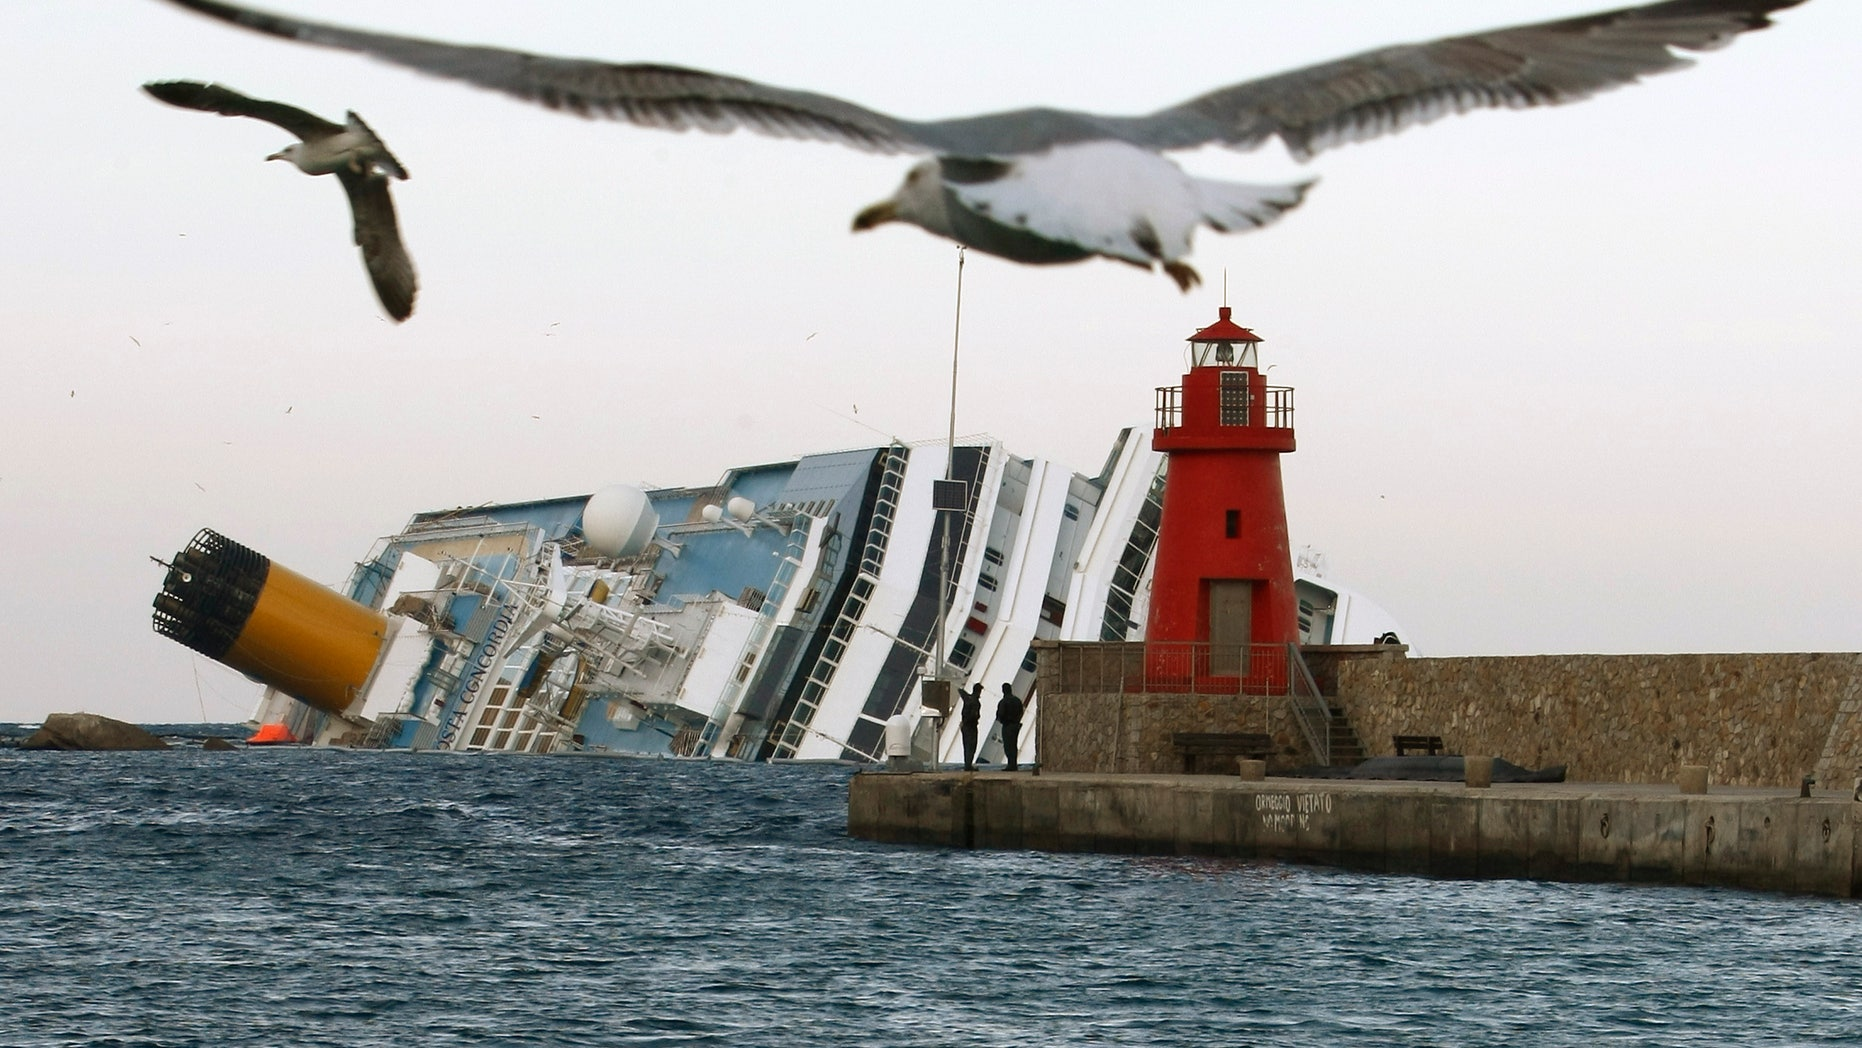 FILE - In this , Monday, Jan. 30, 2012 file photo, seagulls fly in front of the grounded cruise ship Costa Concordia off the Tuscan island of Giglio, Italy. As if the nightmares, flashbacks and anxiety weren't enough, passengers who survived the terrifying grounding and capsizing of the Costa Concordia off Tuscany have come in for a rude shock as they mark the first anniversary of the disaster on Sunday, Jan. 13, 2013. Ship owner Costa Crociere SpA, the Italian unit of Miami-based Carnival Corp., sent several passengers a letter telling them they weren't welcome at the official anniversary ceremonies on the island of Giglio where the hulking ship still rests. Costa says the day is focused on the families of the 32 people who died Jan. 13, 2012, not the 4,200 passengers and crew who survived. (AP Photo/Pier Paolo Cito, File)